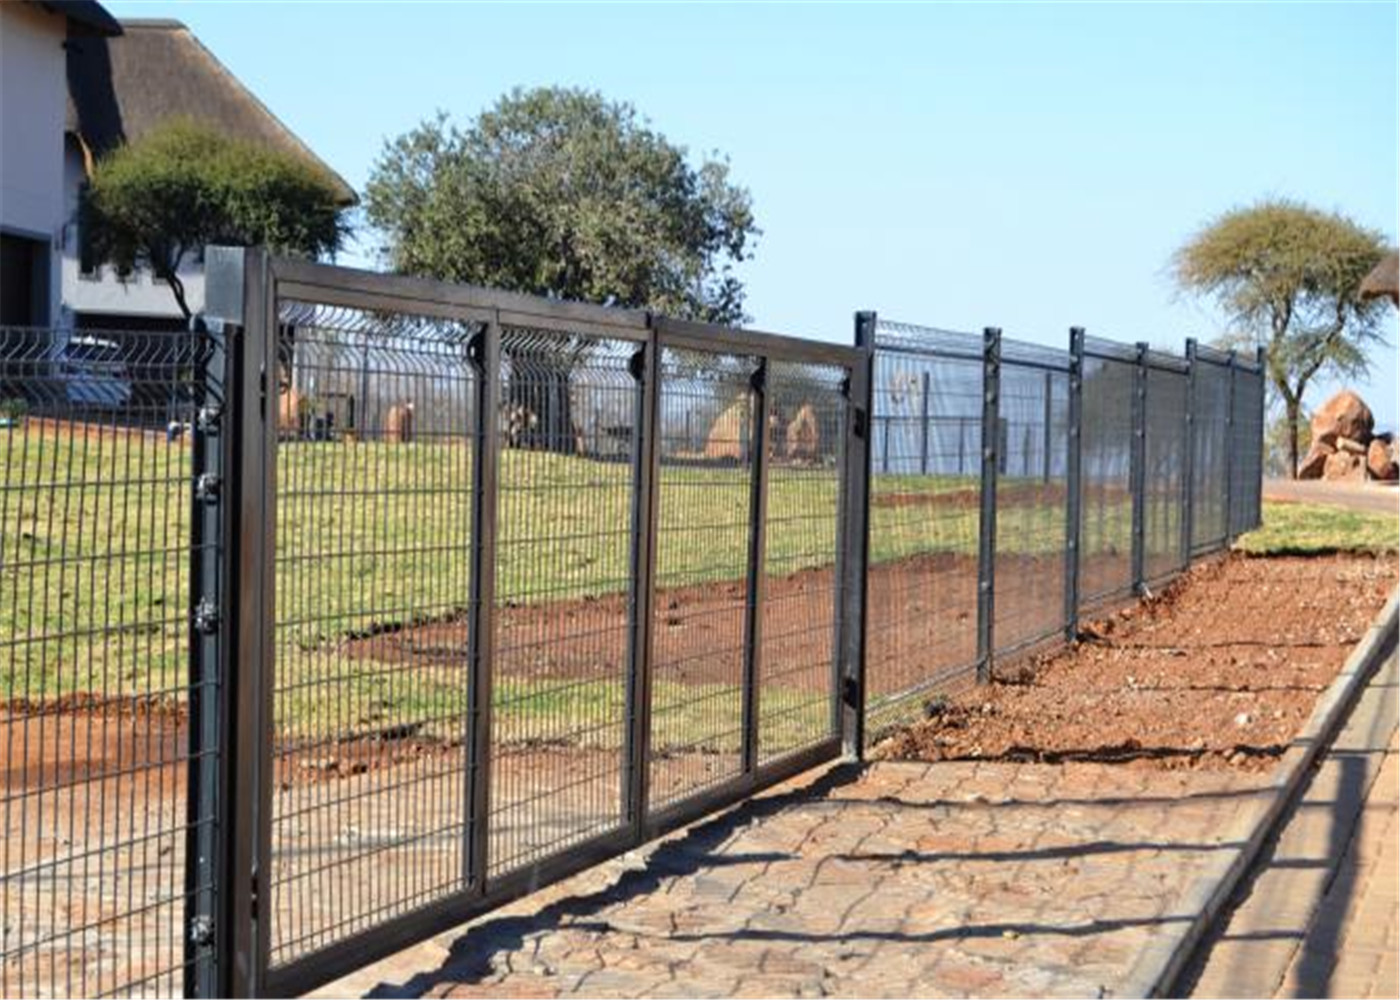 358 security fencing / Military security fence / High ...